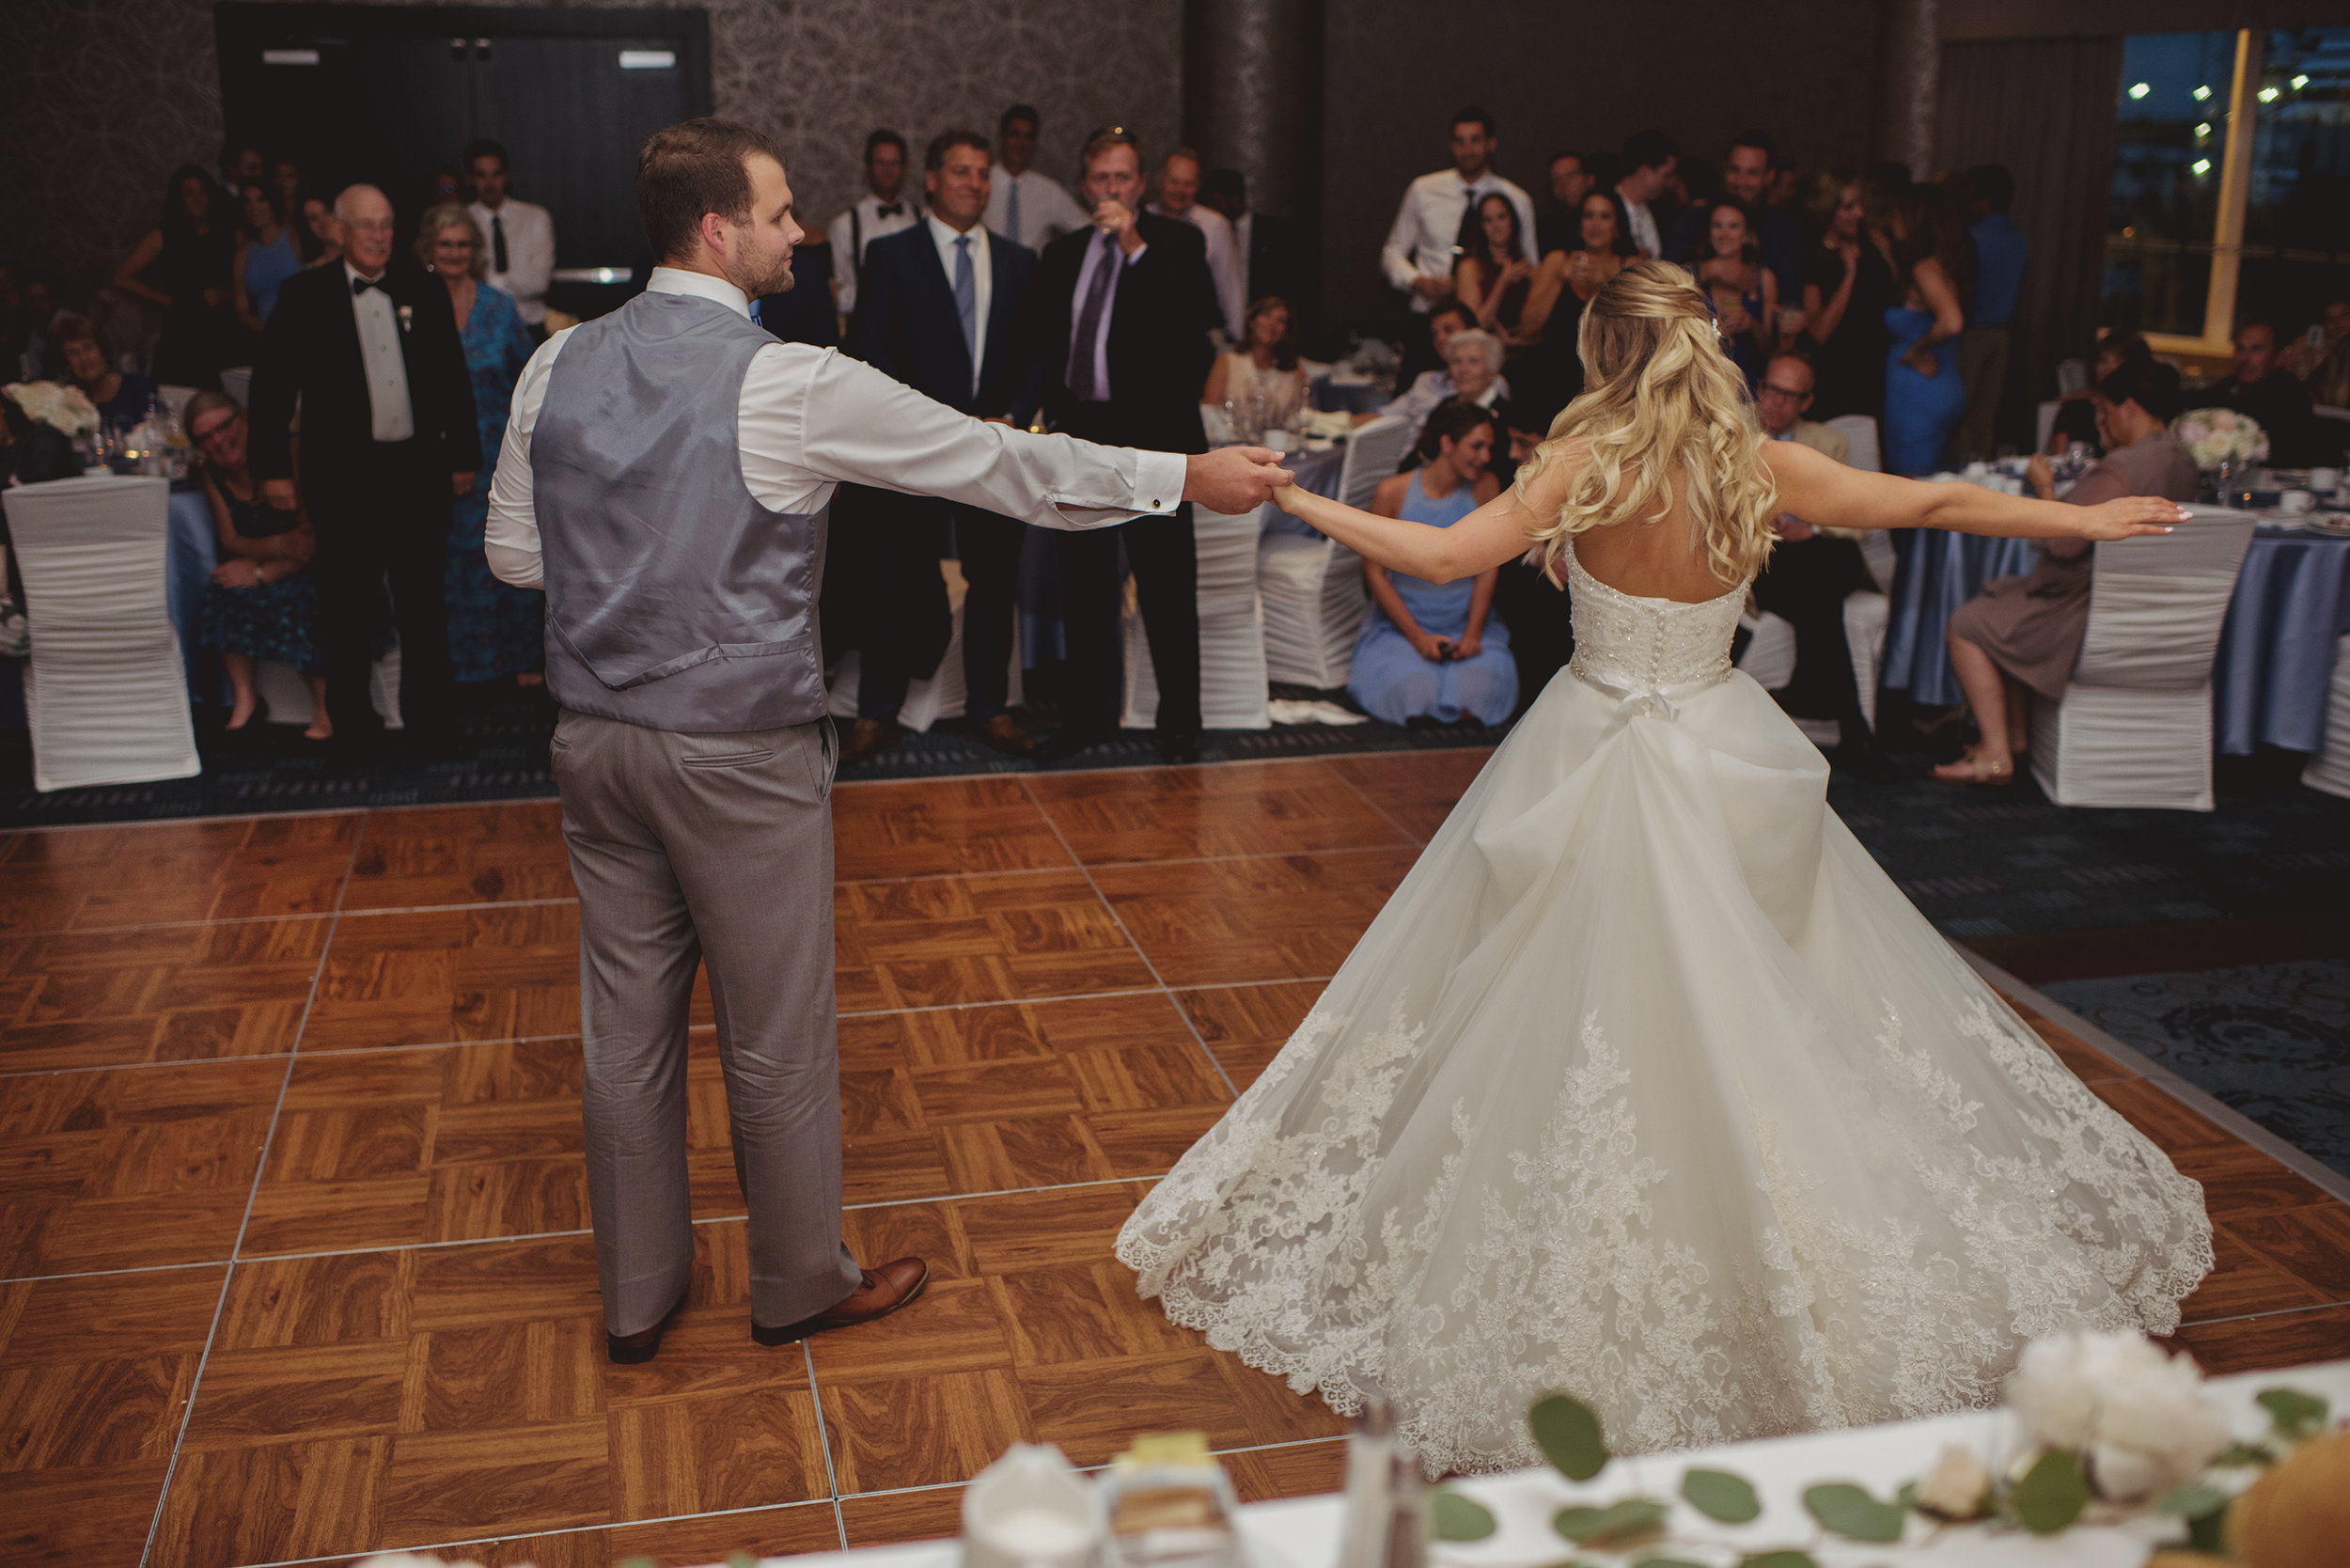 M&J_First Dance-044.jpg